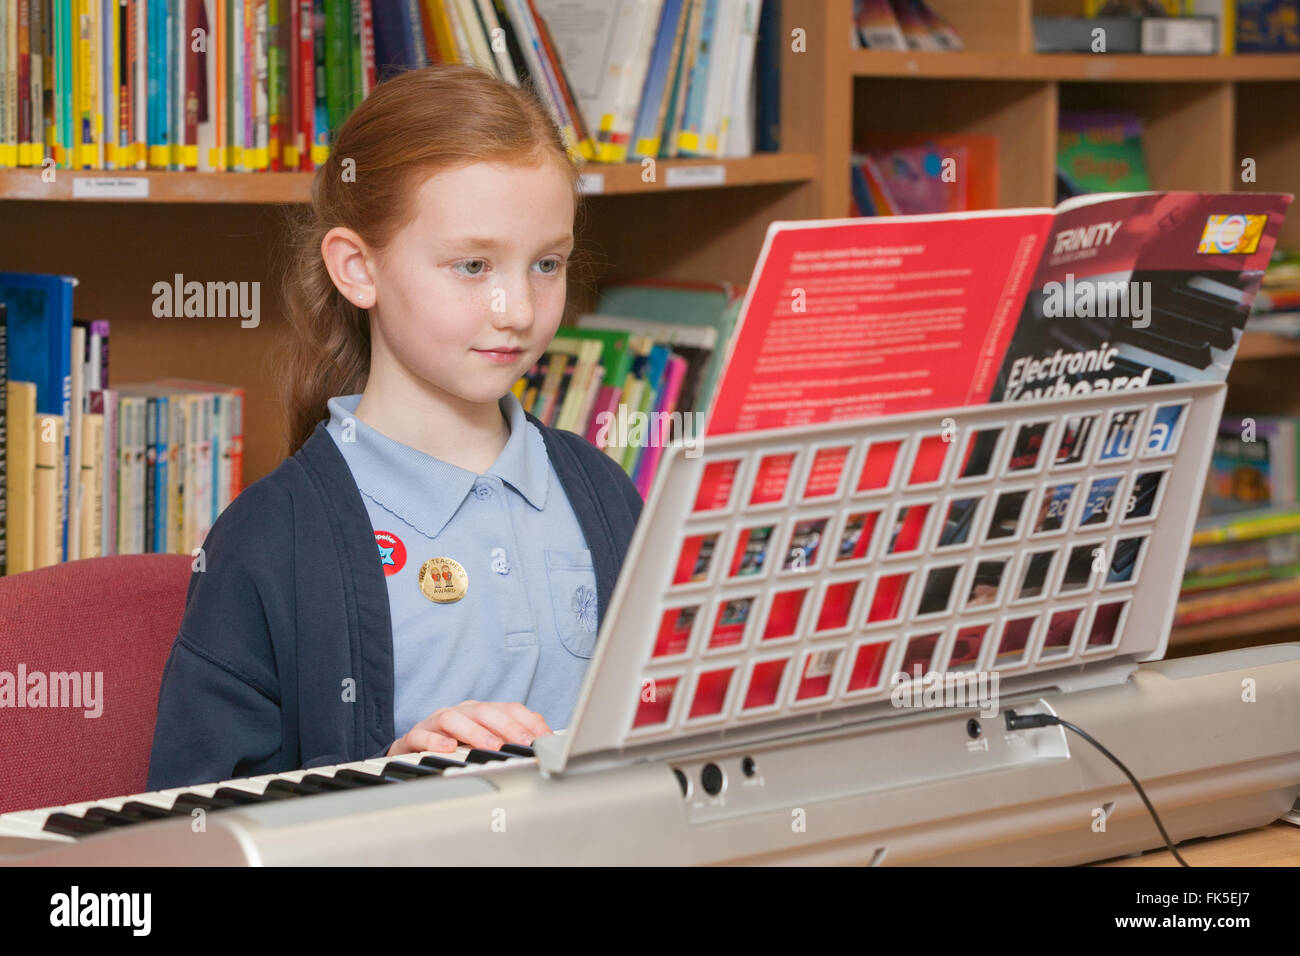 A pupil in school uniform at a Primary School in the UK playing an electronic piano keyboard. - Stock Image